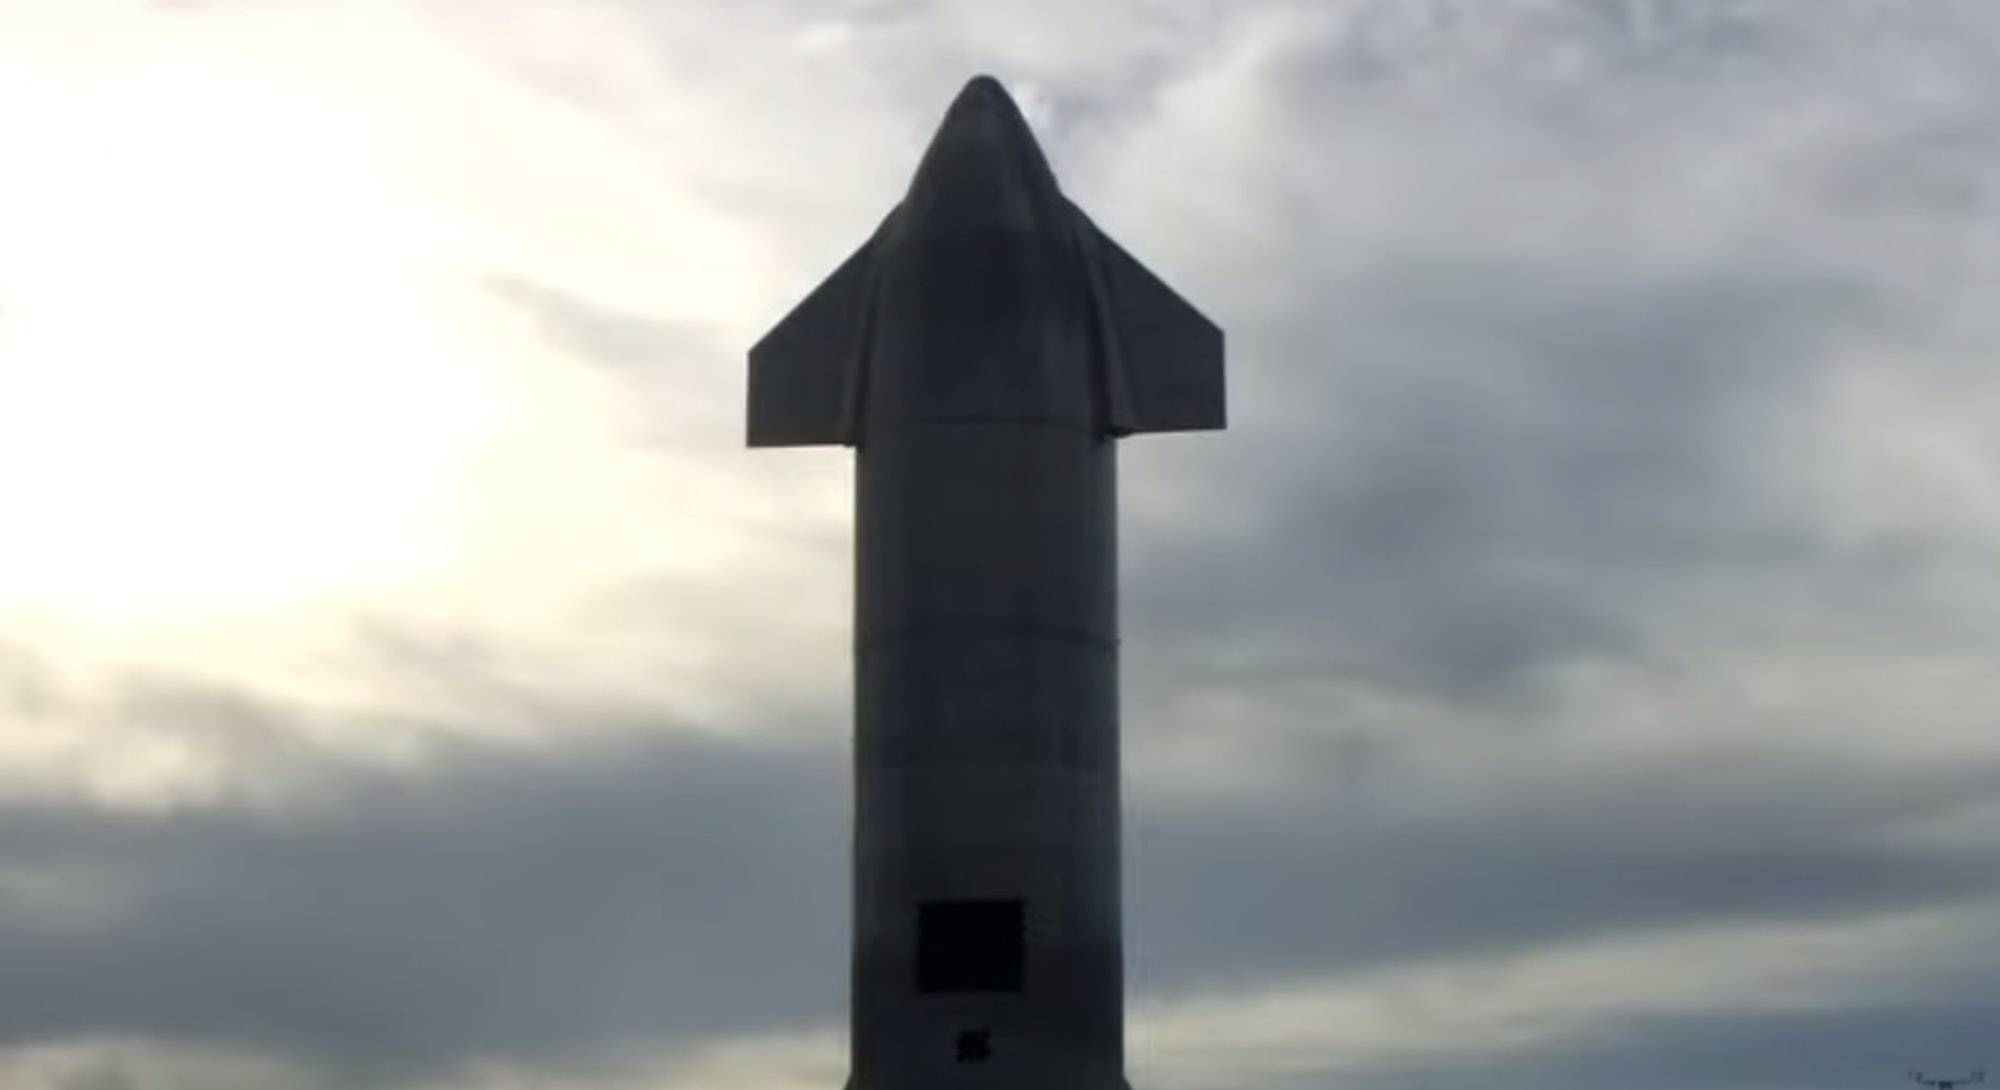 Screengrab of the SN10 prototype from SpaceX launch video